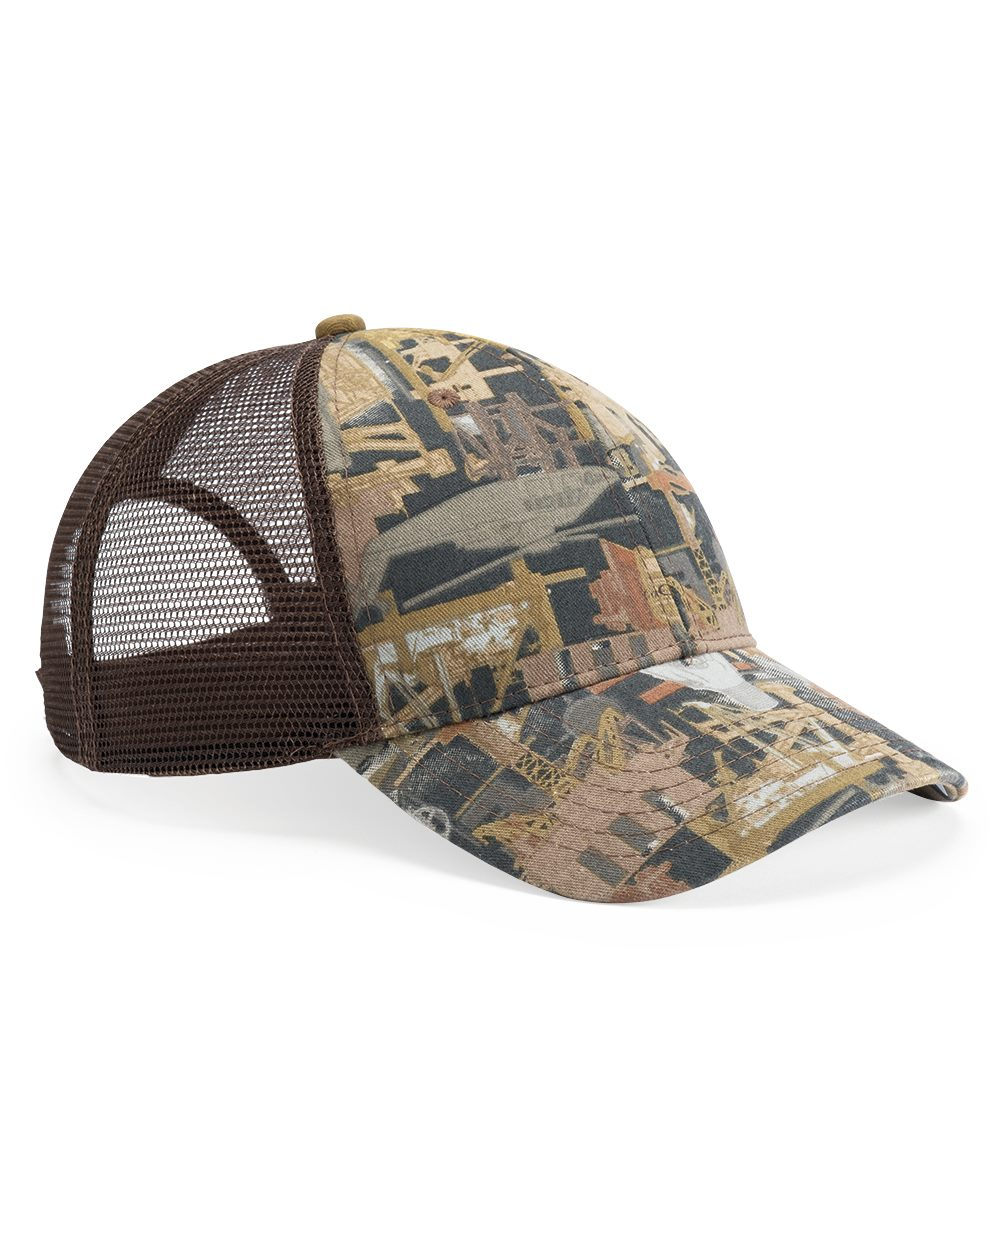 Kati OIL5M - Oil Field Camo Cap With Mesh Back